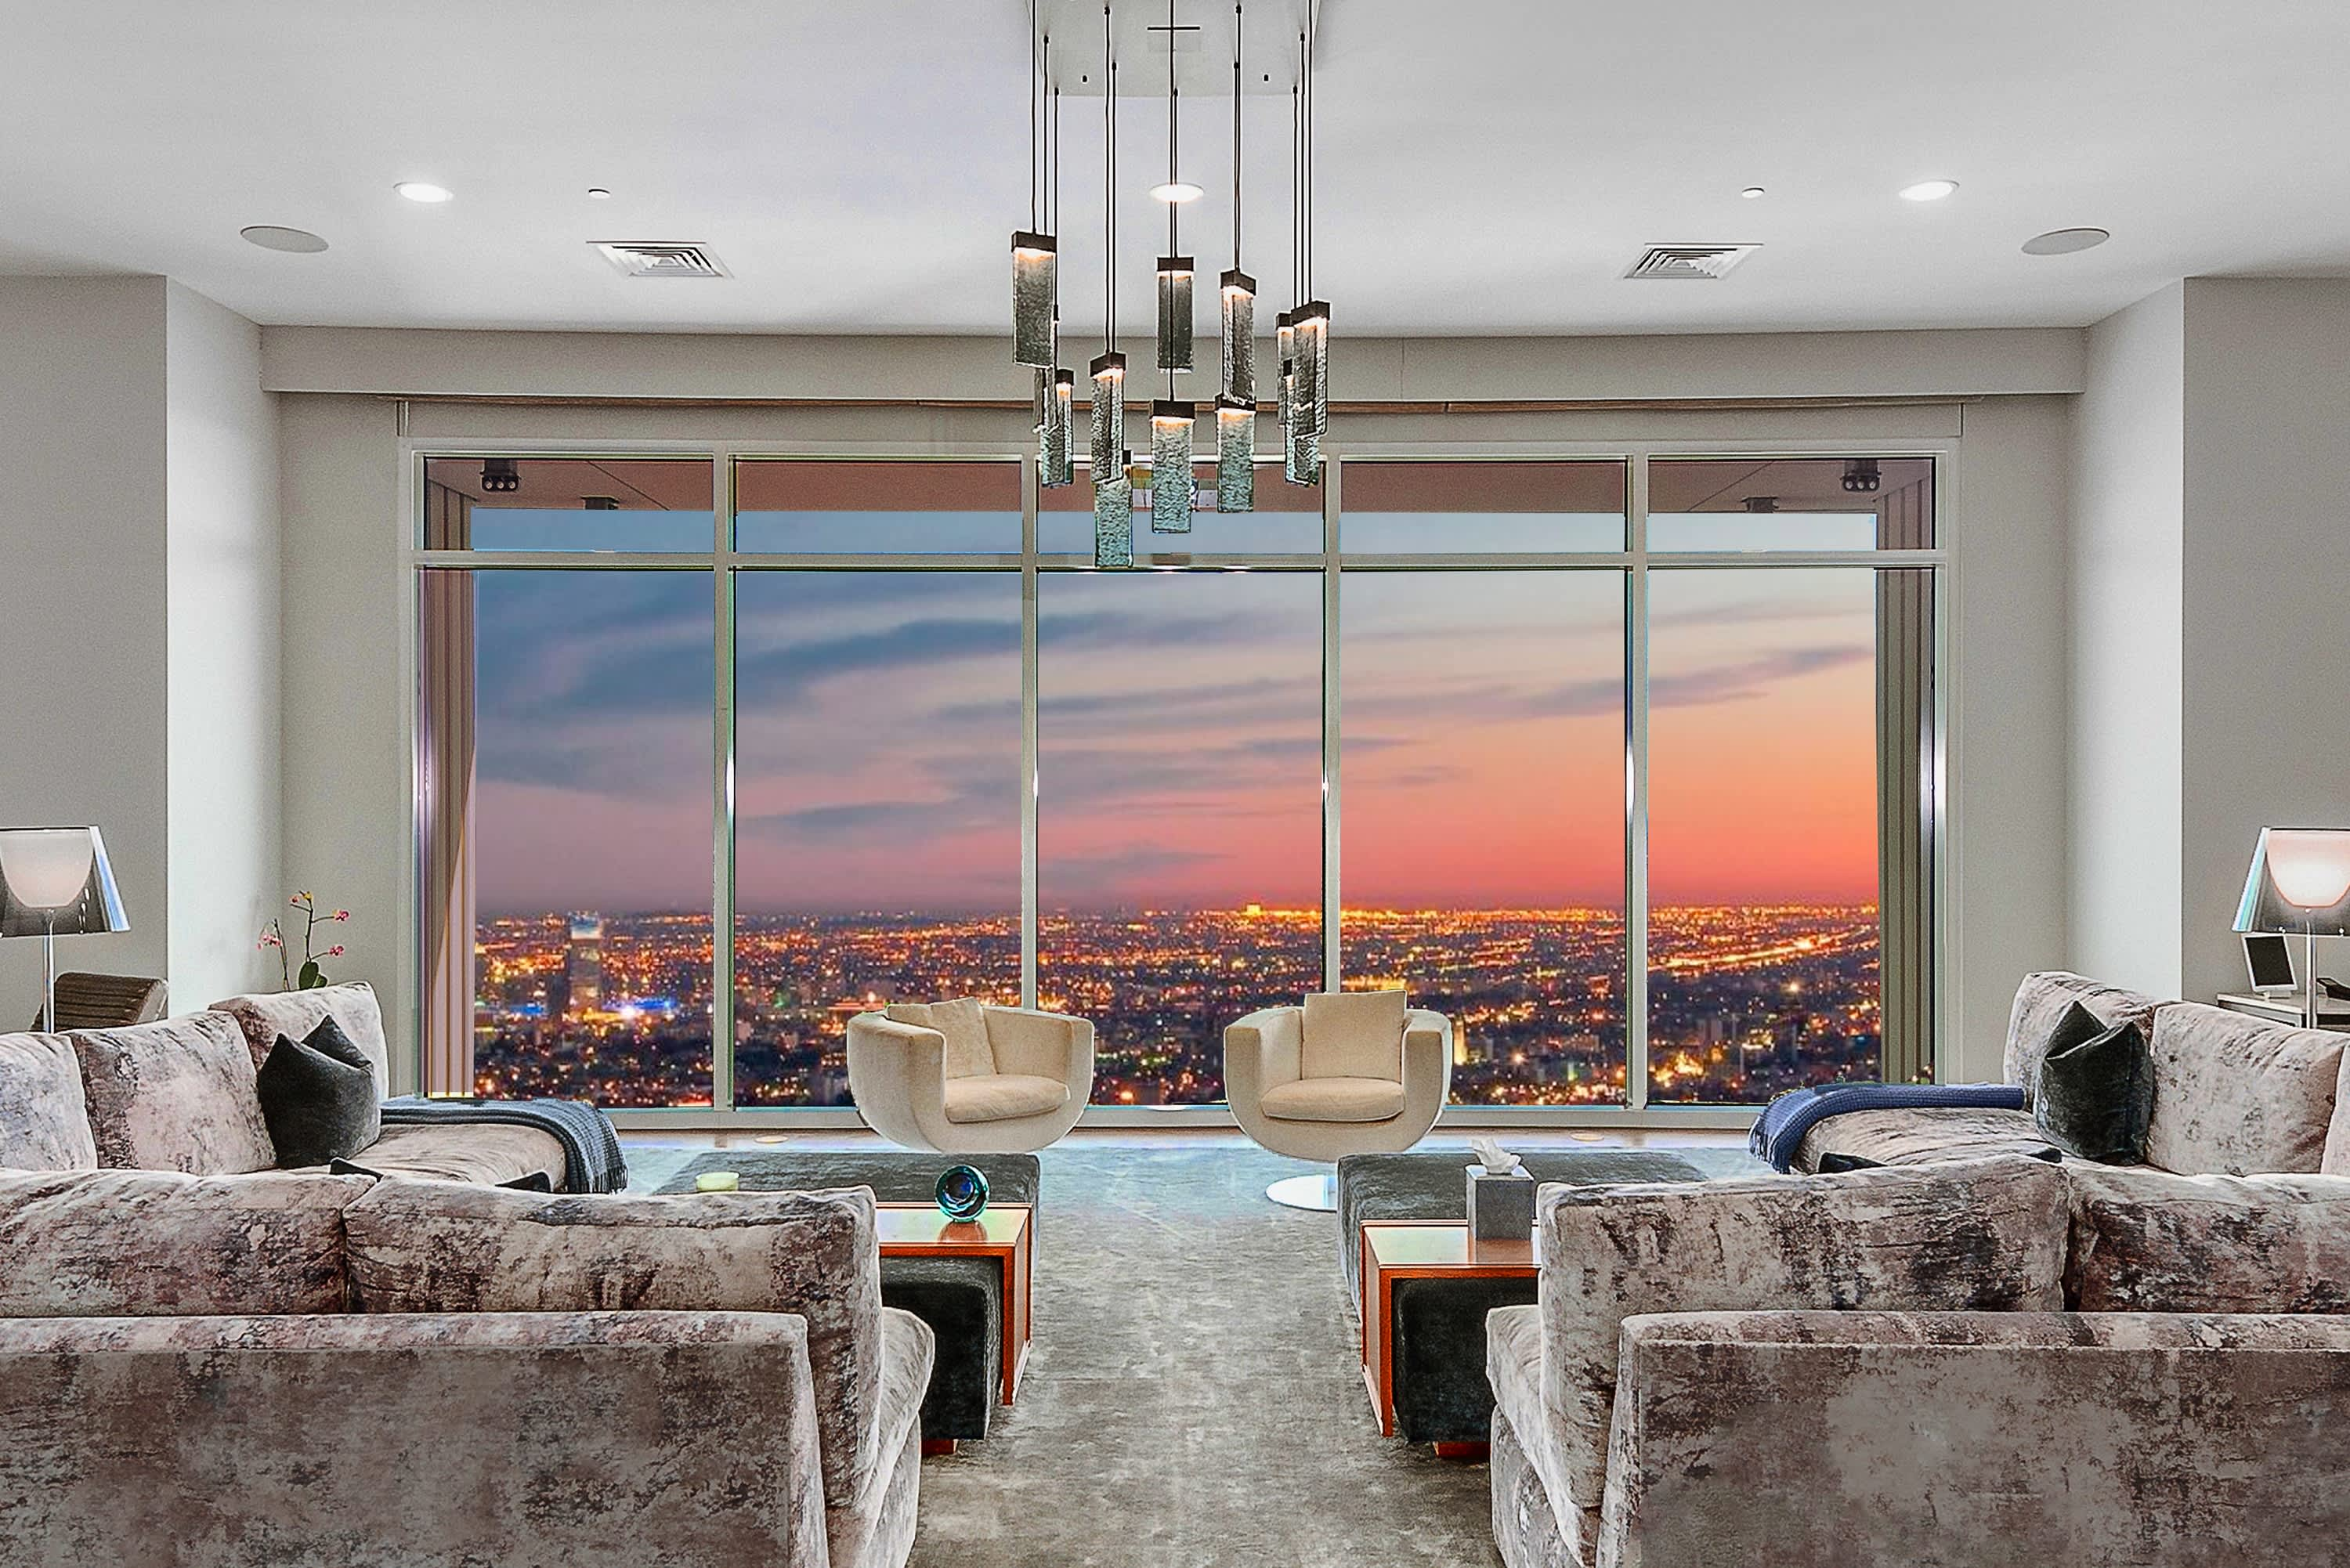 Matthew Perry's L.A. penthouse is on sale for $35 million—take a look inside